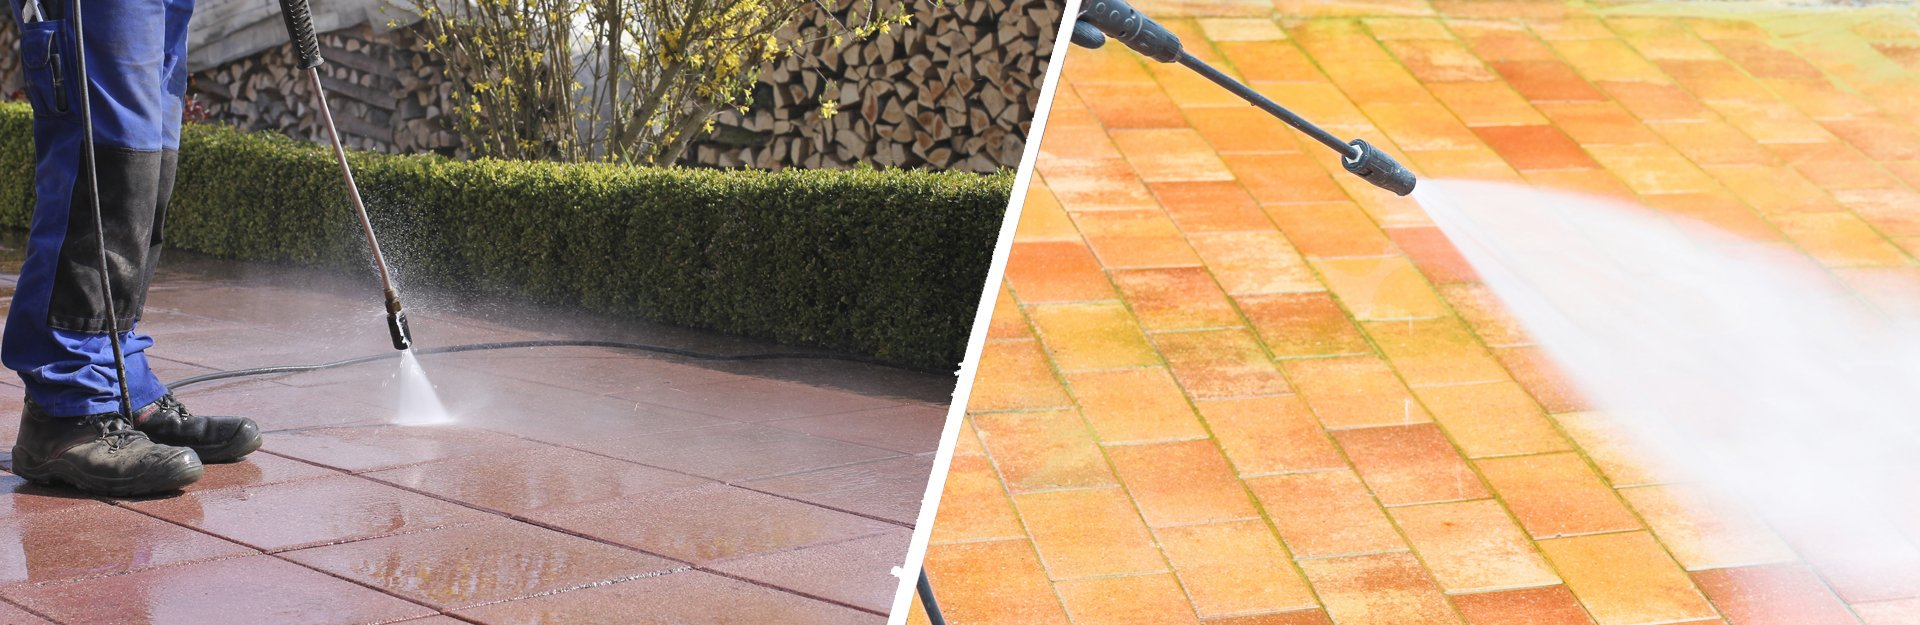 Patio cleaning repointing sealing from experts at all for Cleaning concrete patio slabs